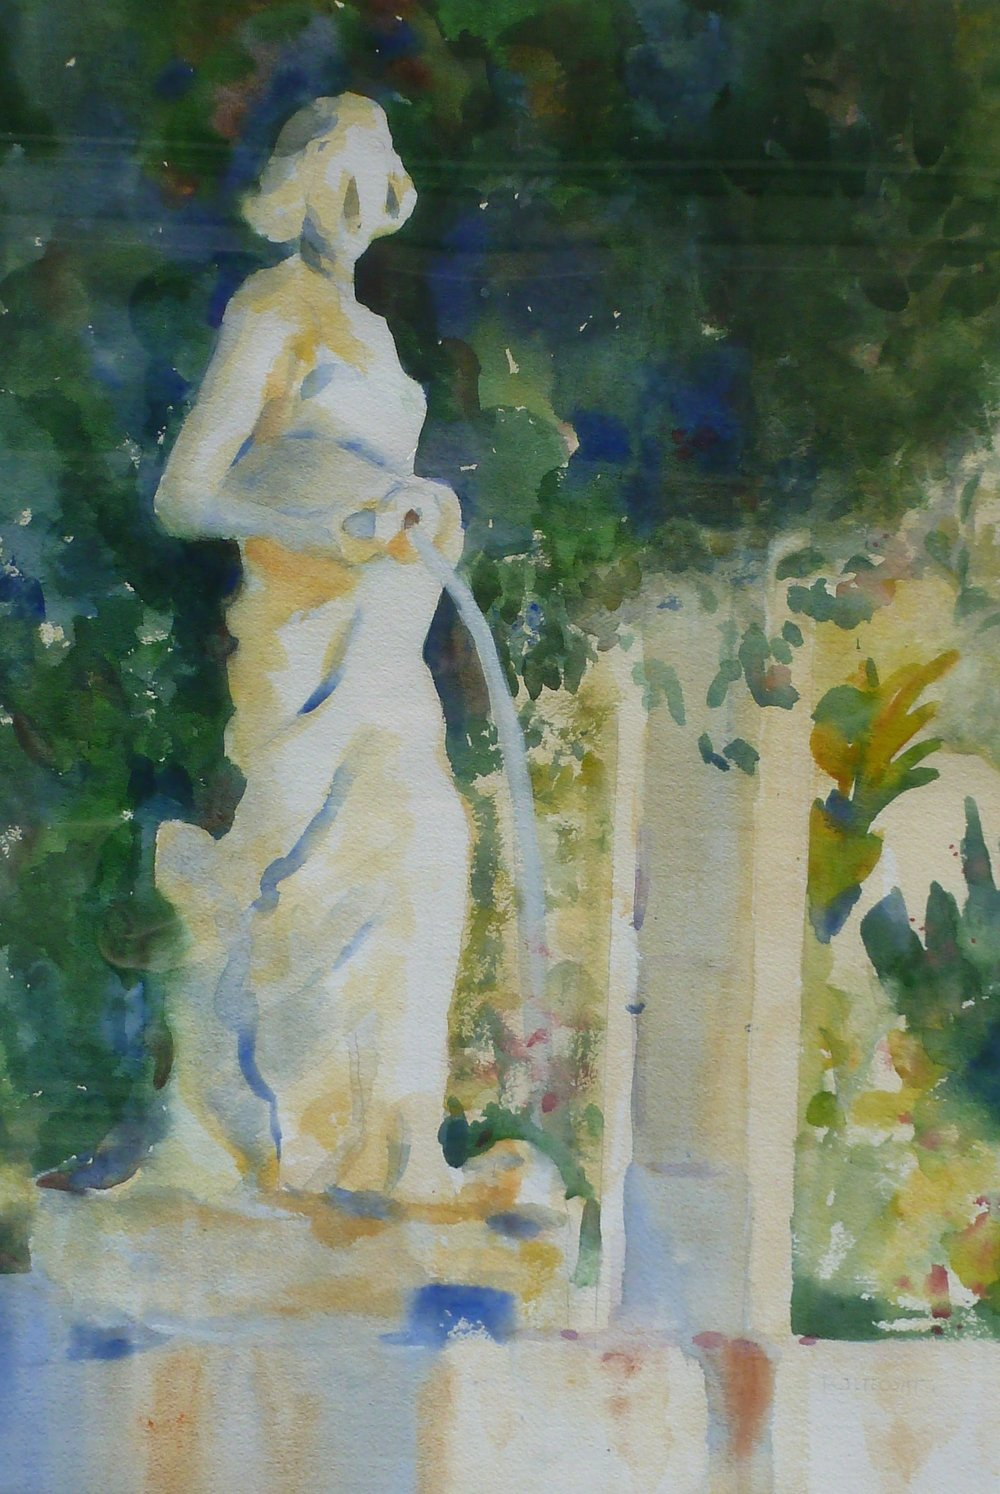 Rachel at the Well       Watercolor      Framed  28hx22w       $500